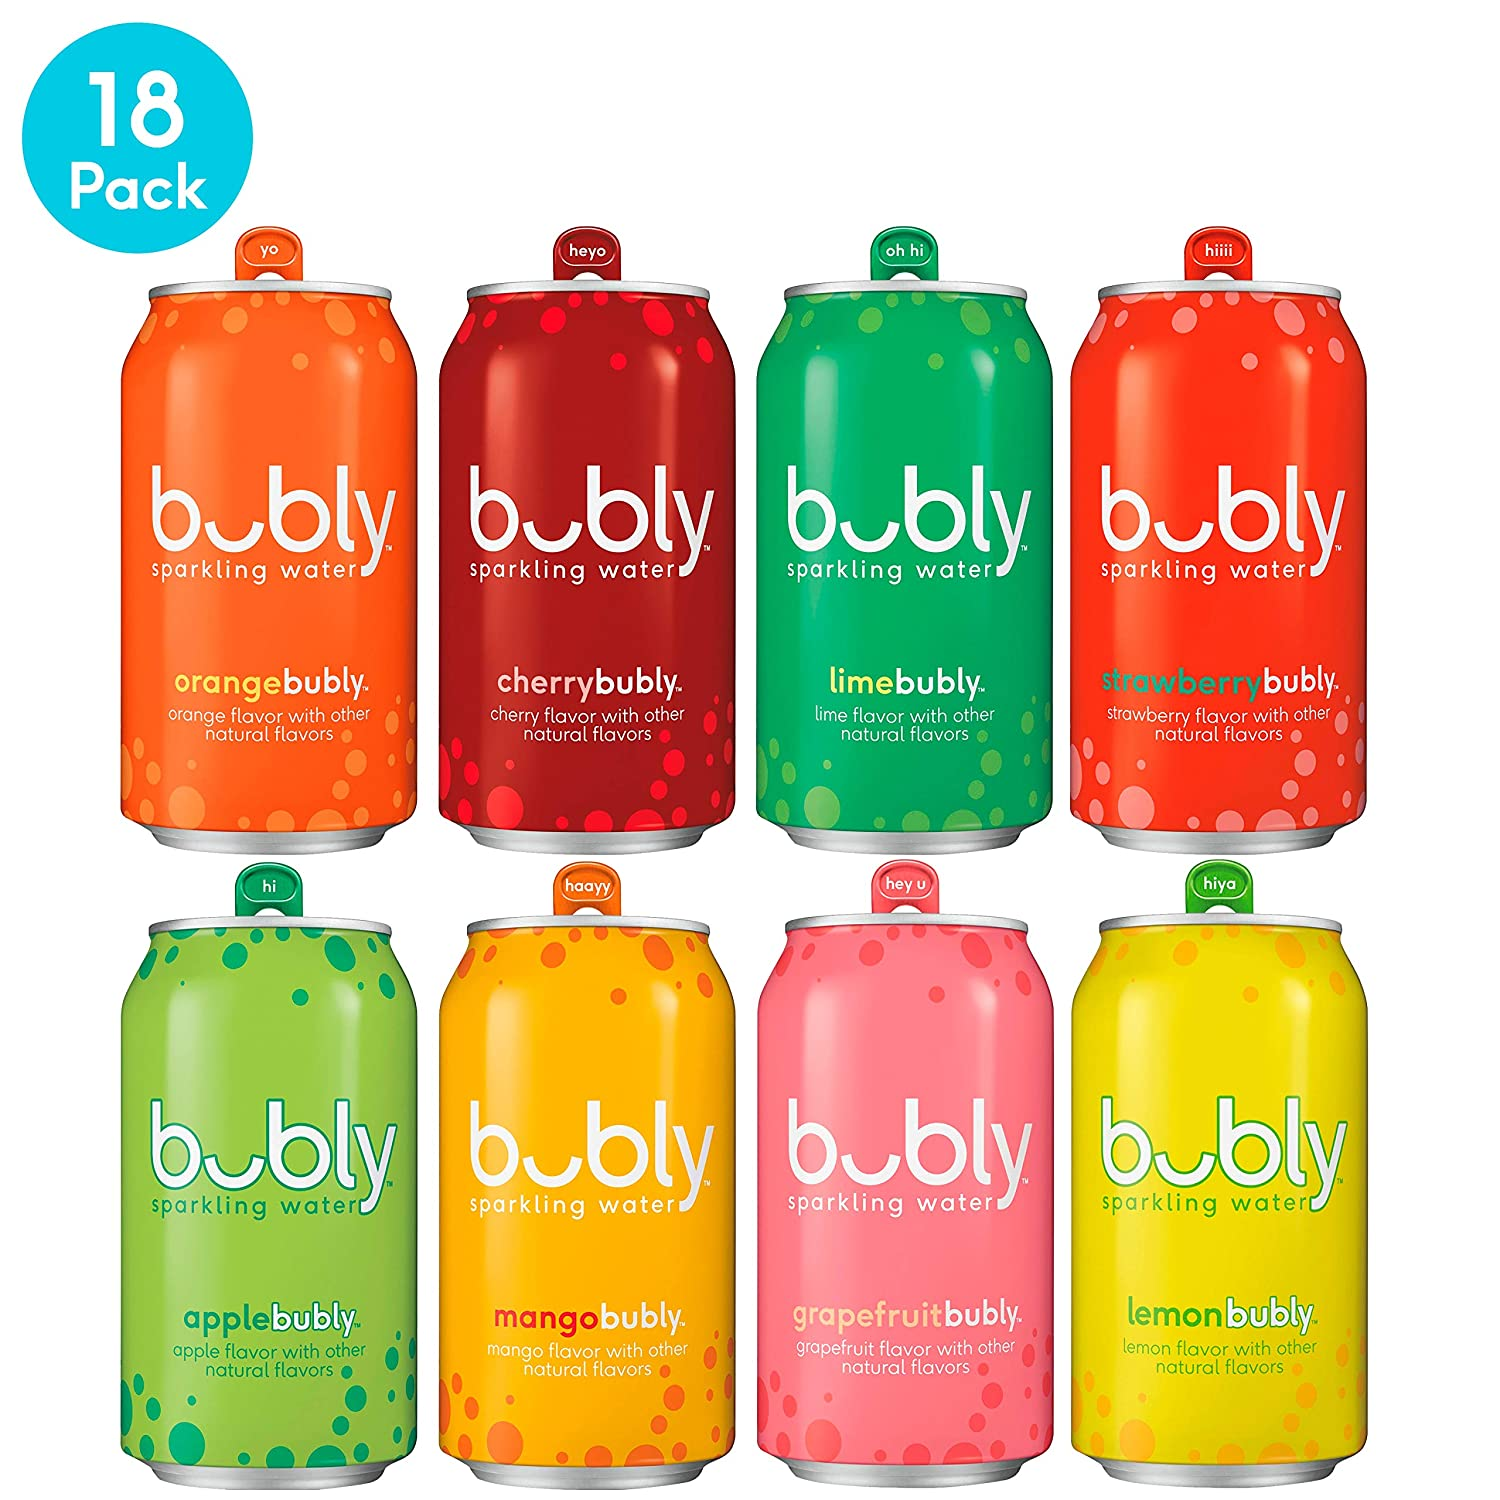 bubly Sparkling Water, 8 Flavor Variety Pack, 12 fl oz  cans, (18 Pack)